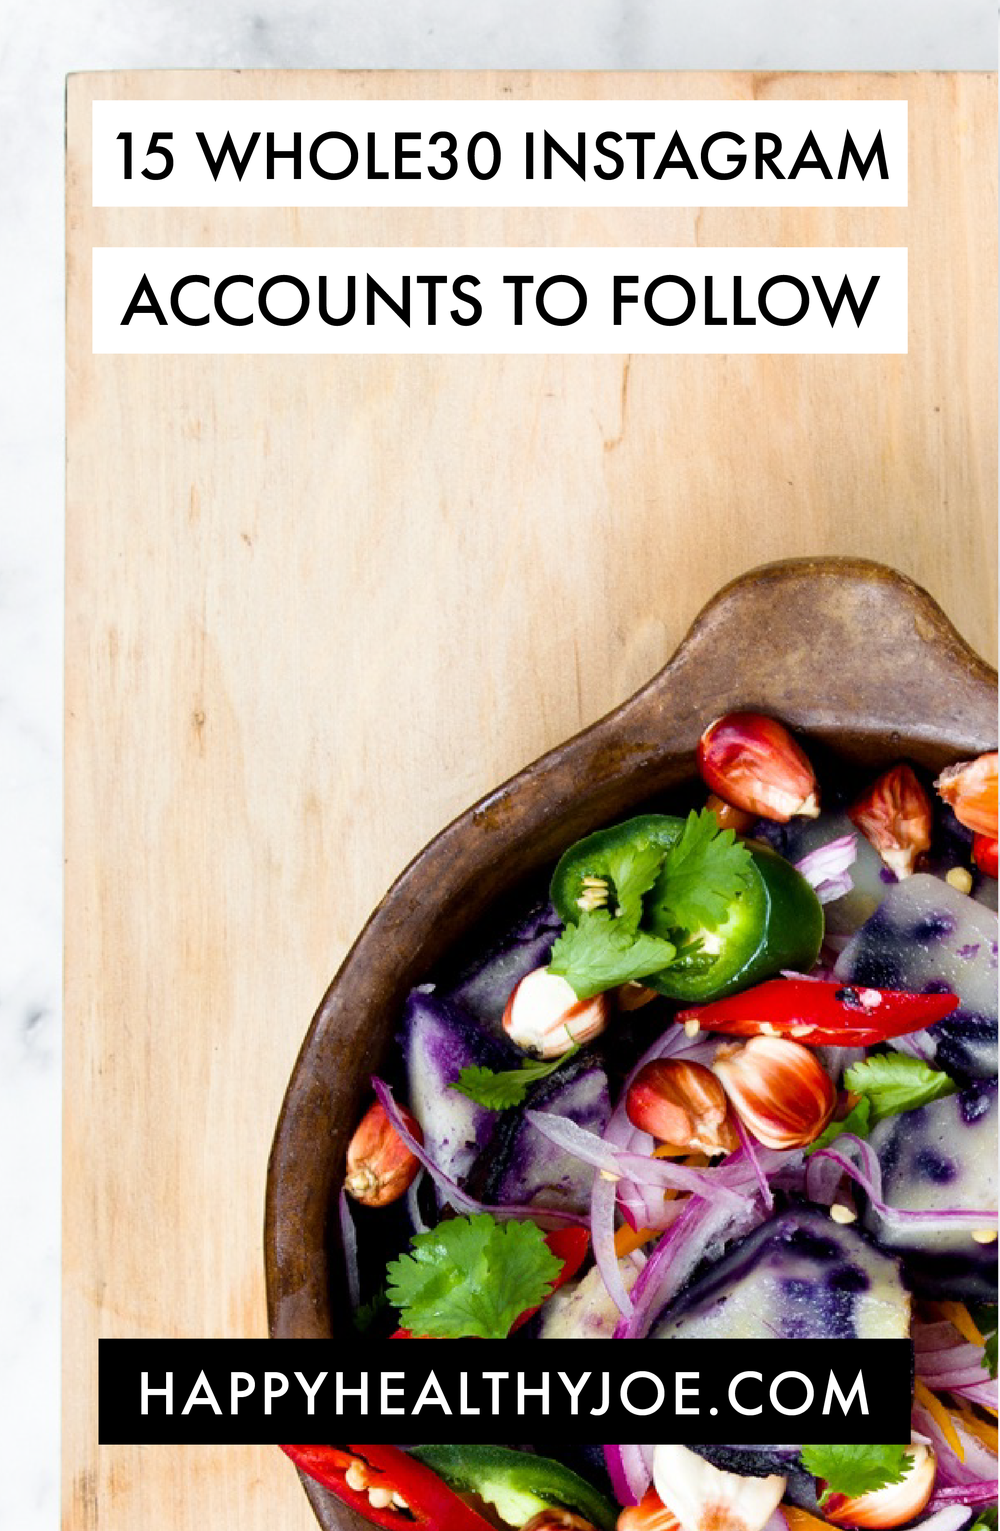 Doing Whole30? 15 Whole30 Instagram Accounts To Follow! | Happy Healthy Joe | Integrative Health Coach